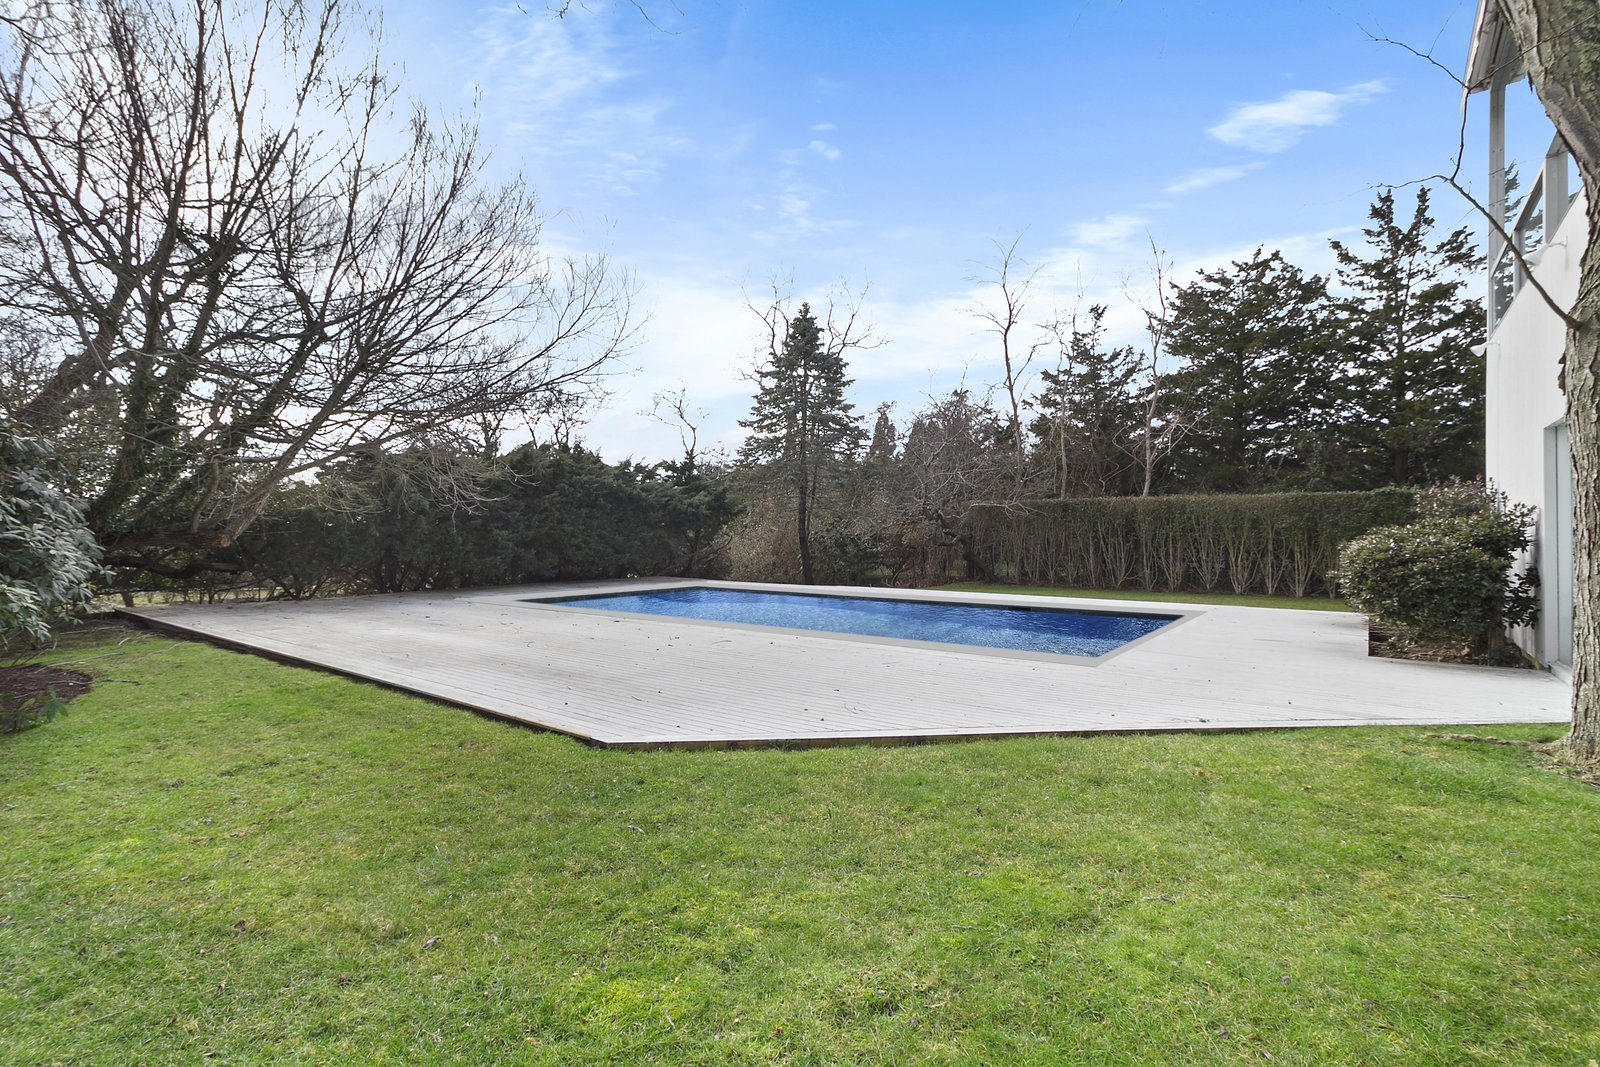 Outdoor, Small, Trees, Back Yard, Grass, Small, and Shrubs The pool and expansive lawn provide ample space for outdoor entertaining.  Best Outdoor Back Yard Small Photos